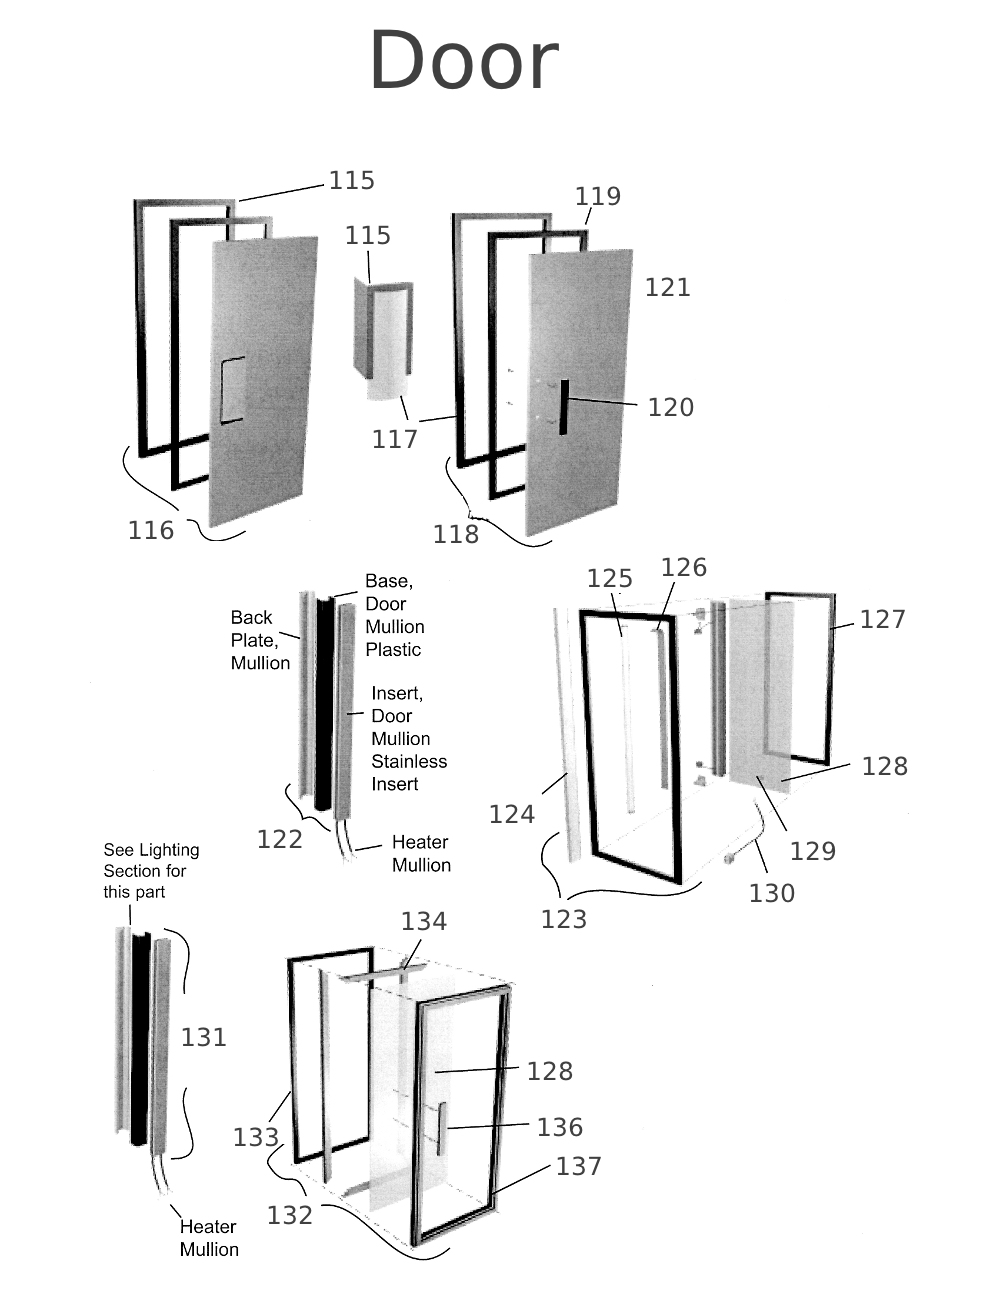 Storm Door Parts Diagram furthermore Garage Door Replacement Parts also ZG9vciBwYXJ0 in addition Search additionally Sash Window Diagram. on andersen window parts diagram